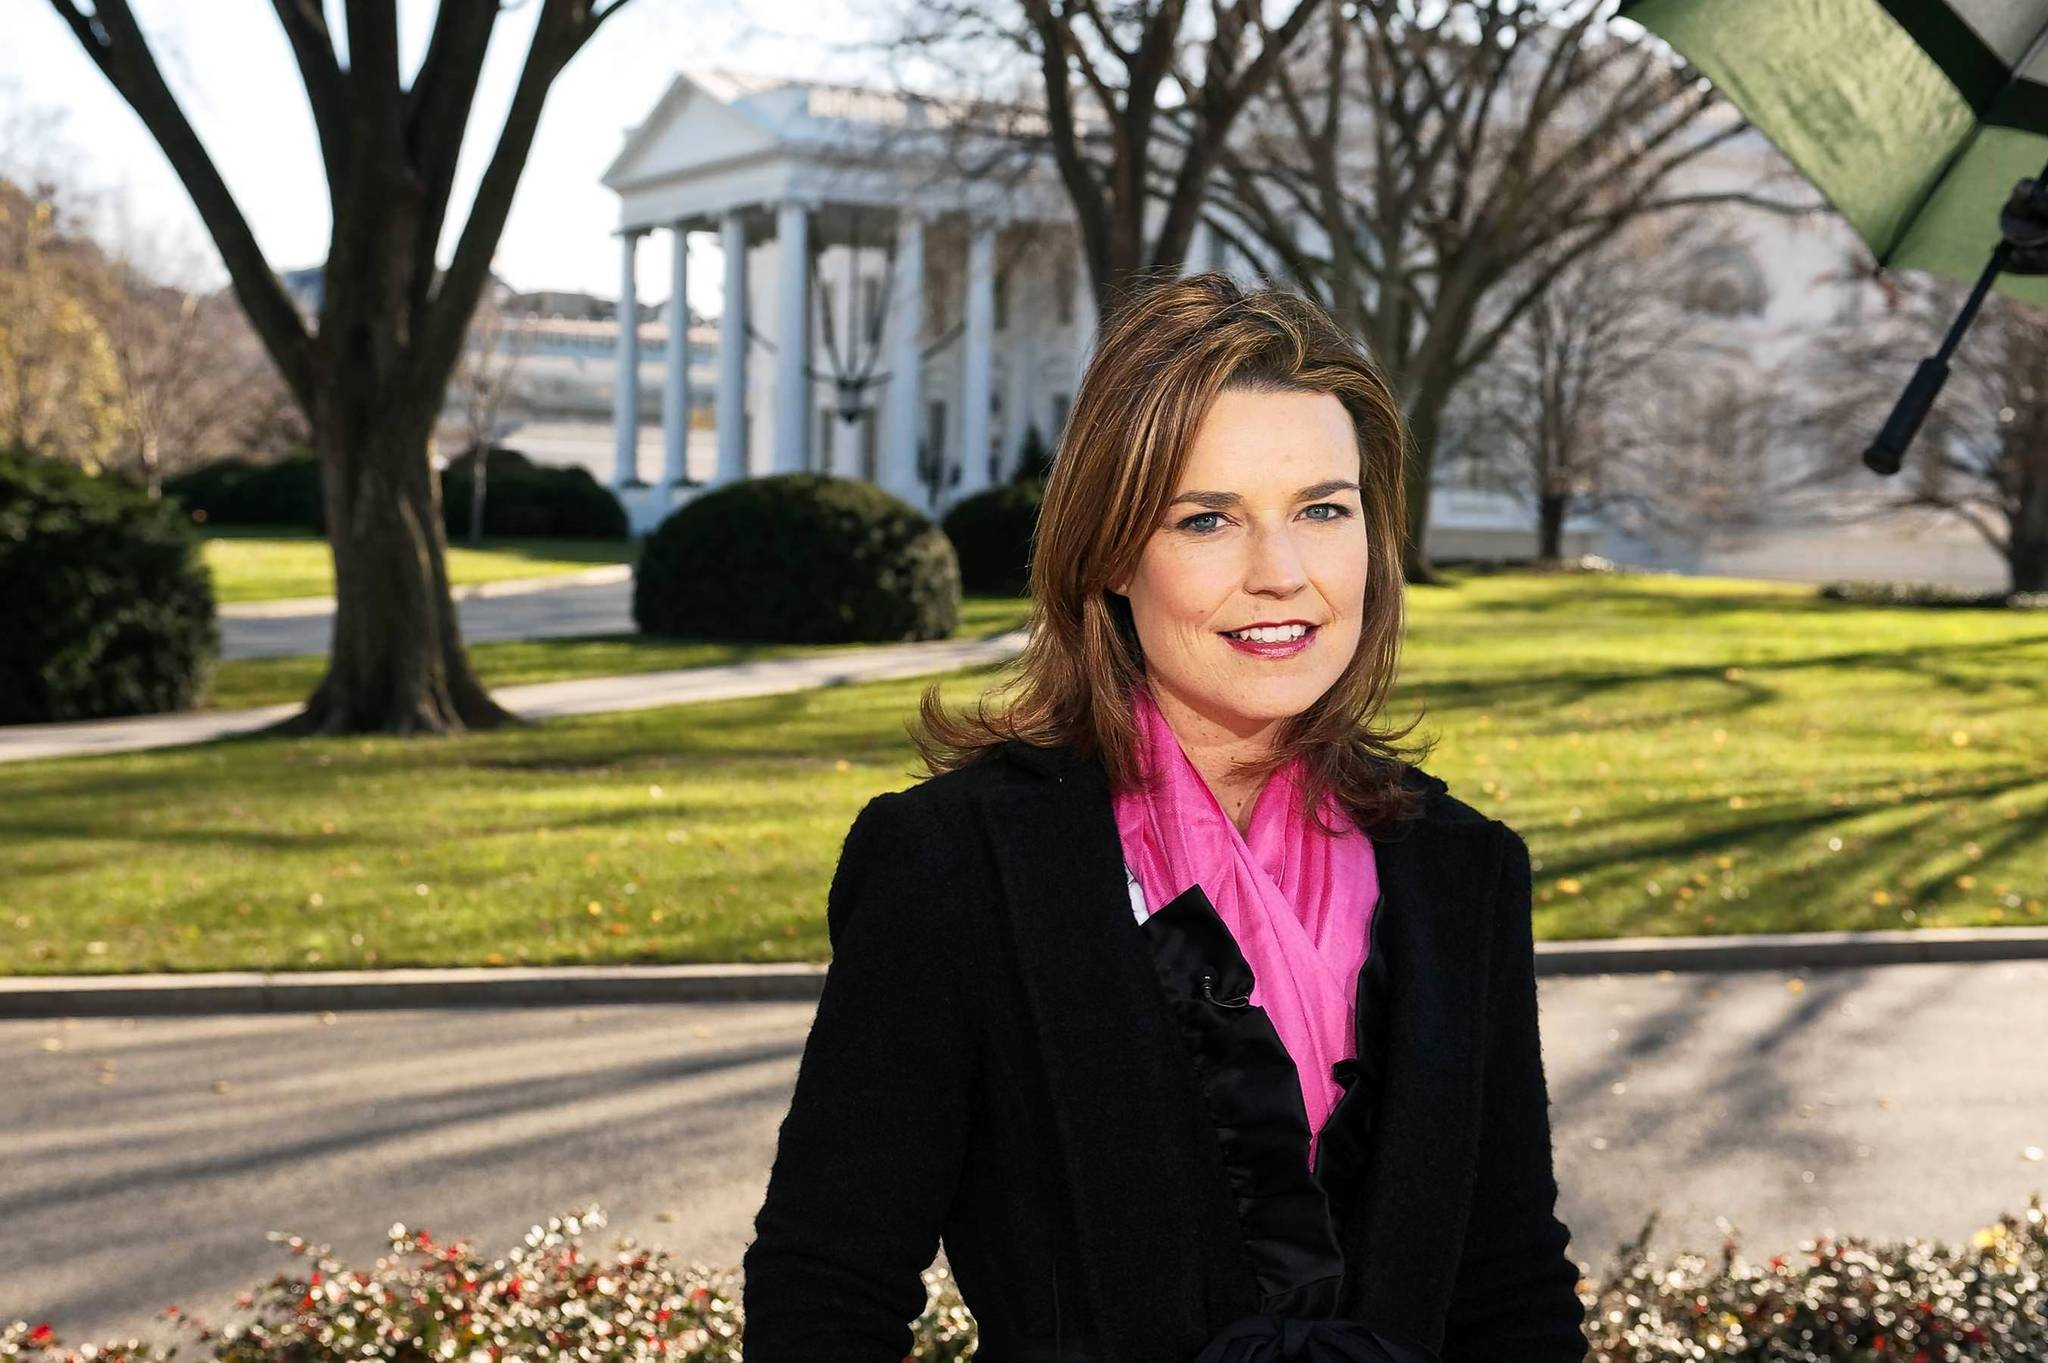 Savannah Guthrie is on the shortlist for Ann Curry's replacement.